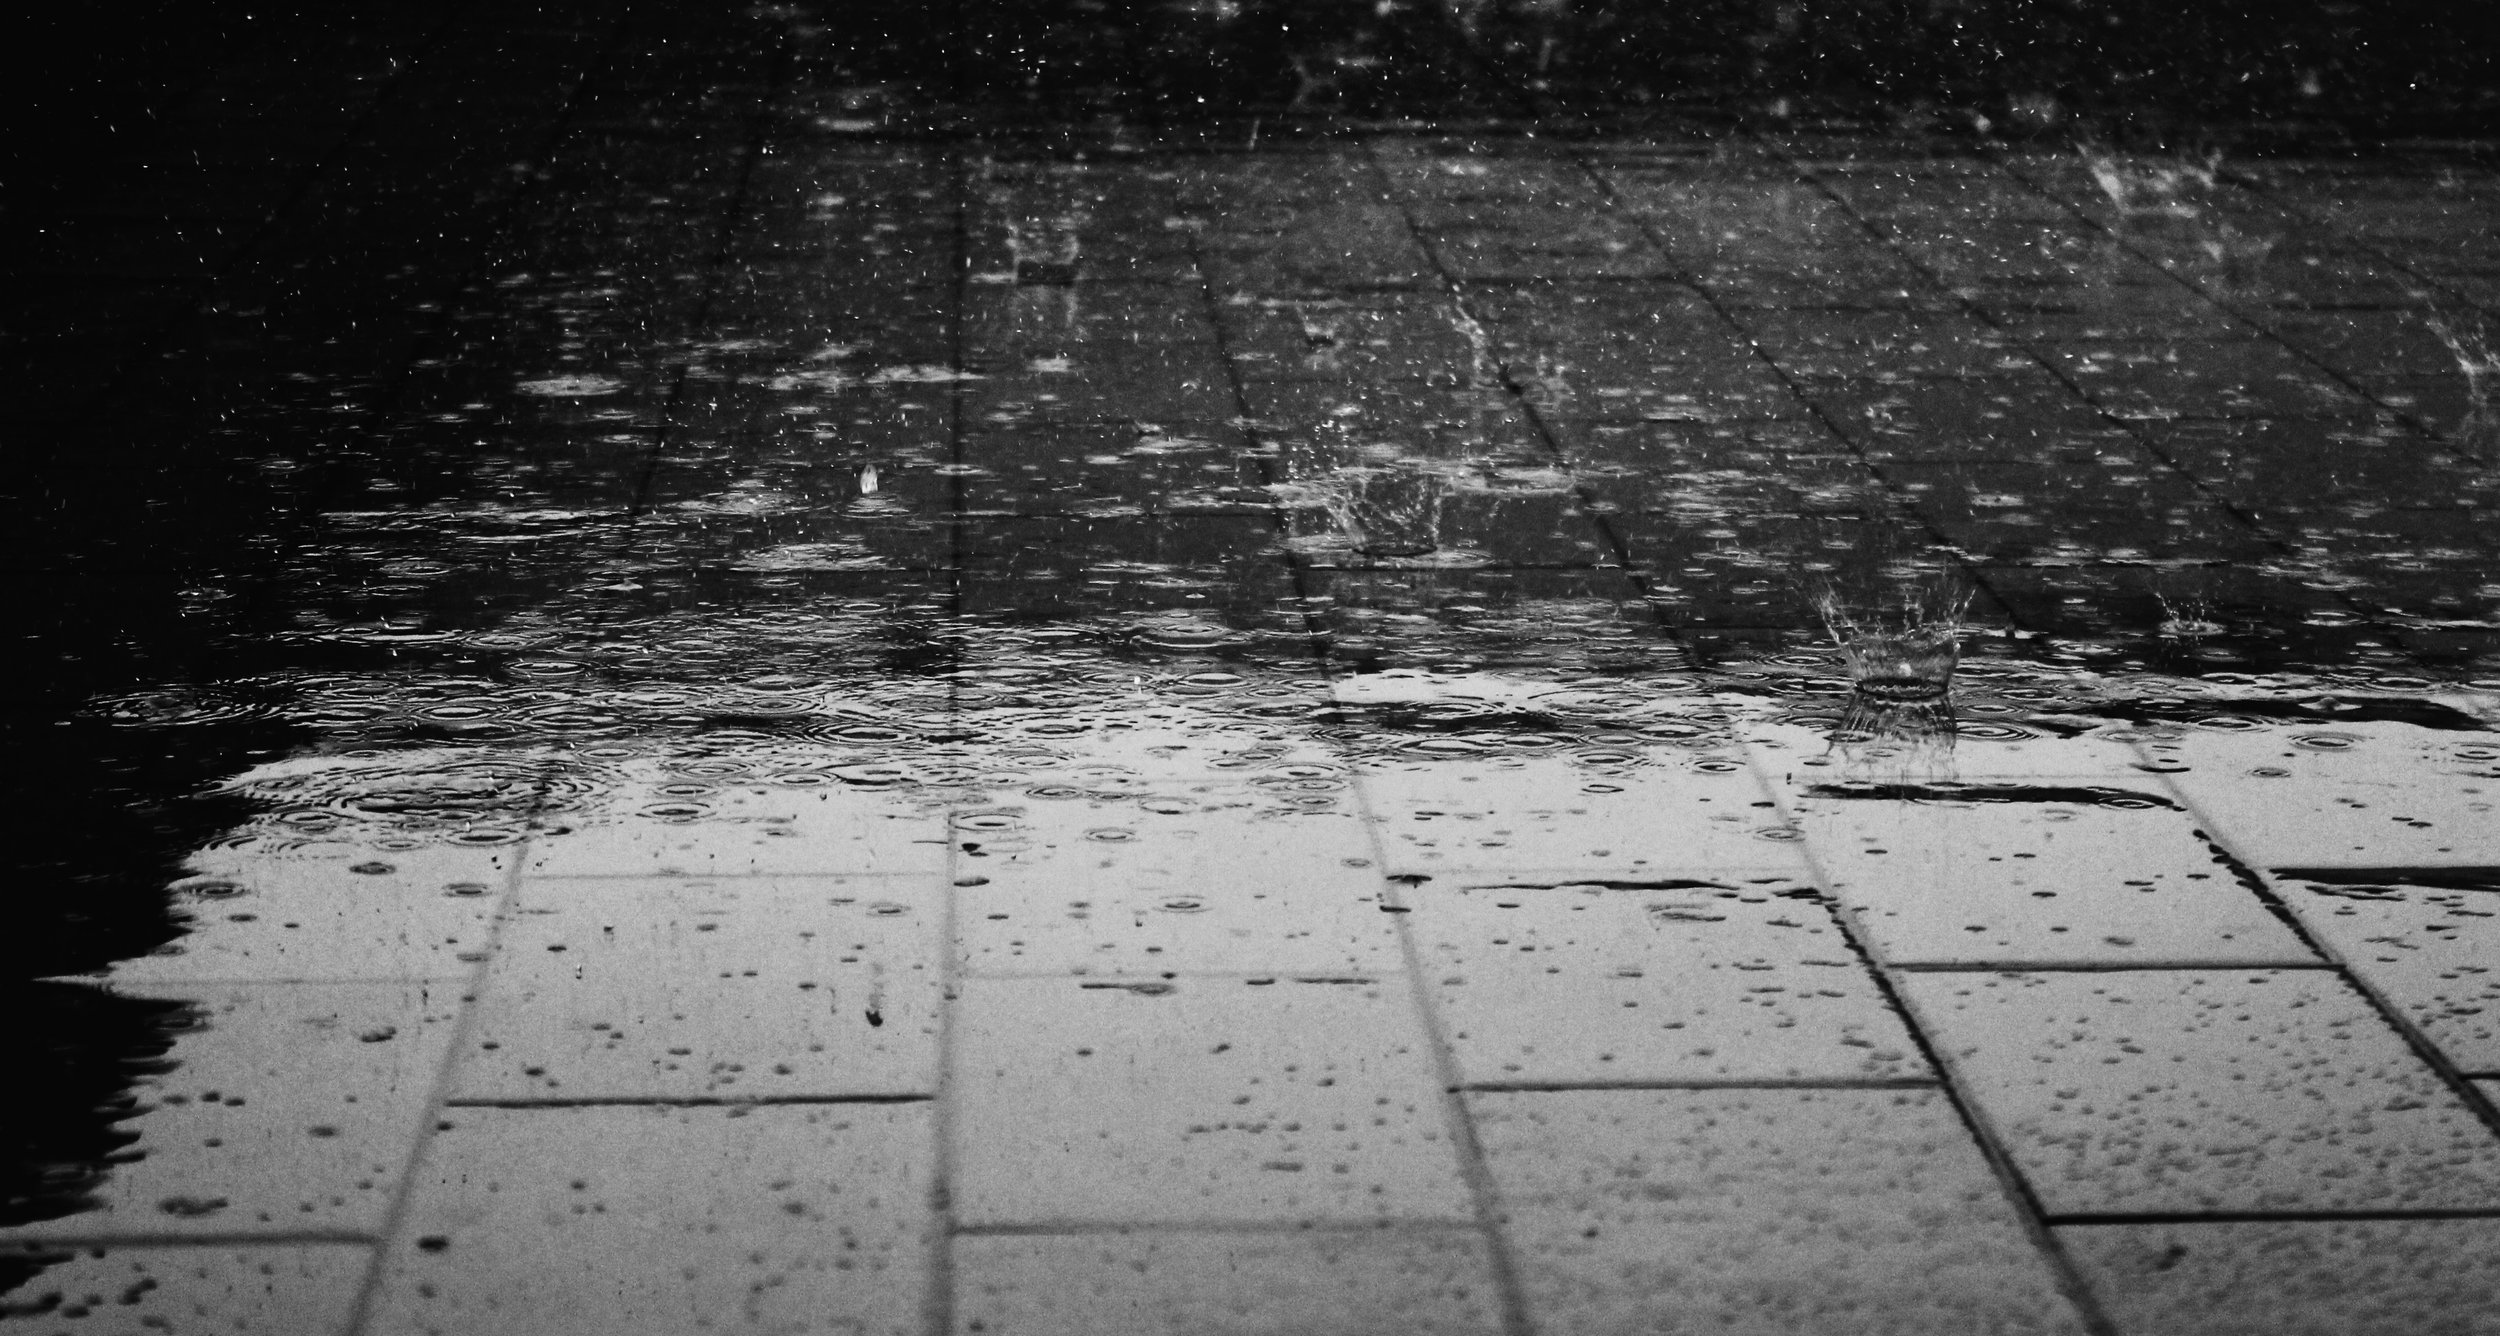 rain-floor-water-wet-69927.jpeg